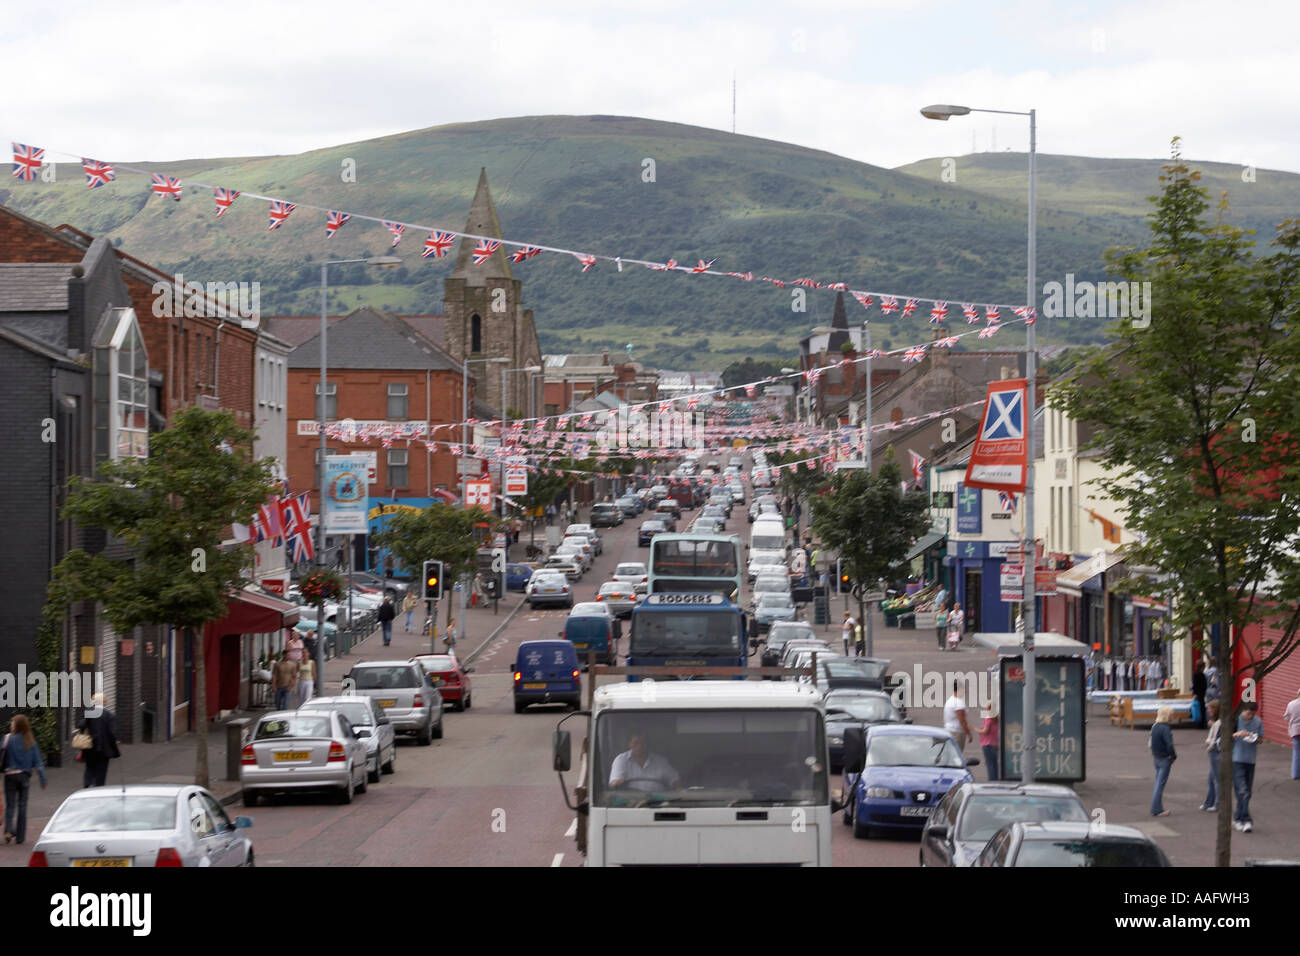 Loyalist Union Jack flags logos murals signs and graffiti on Shankill Road in City of Belfast Northern Ireland UK - Stock Image